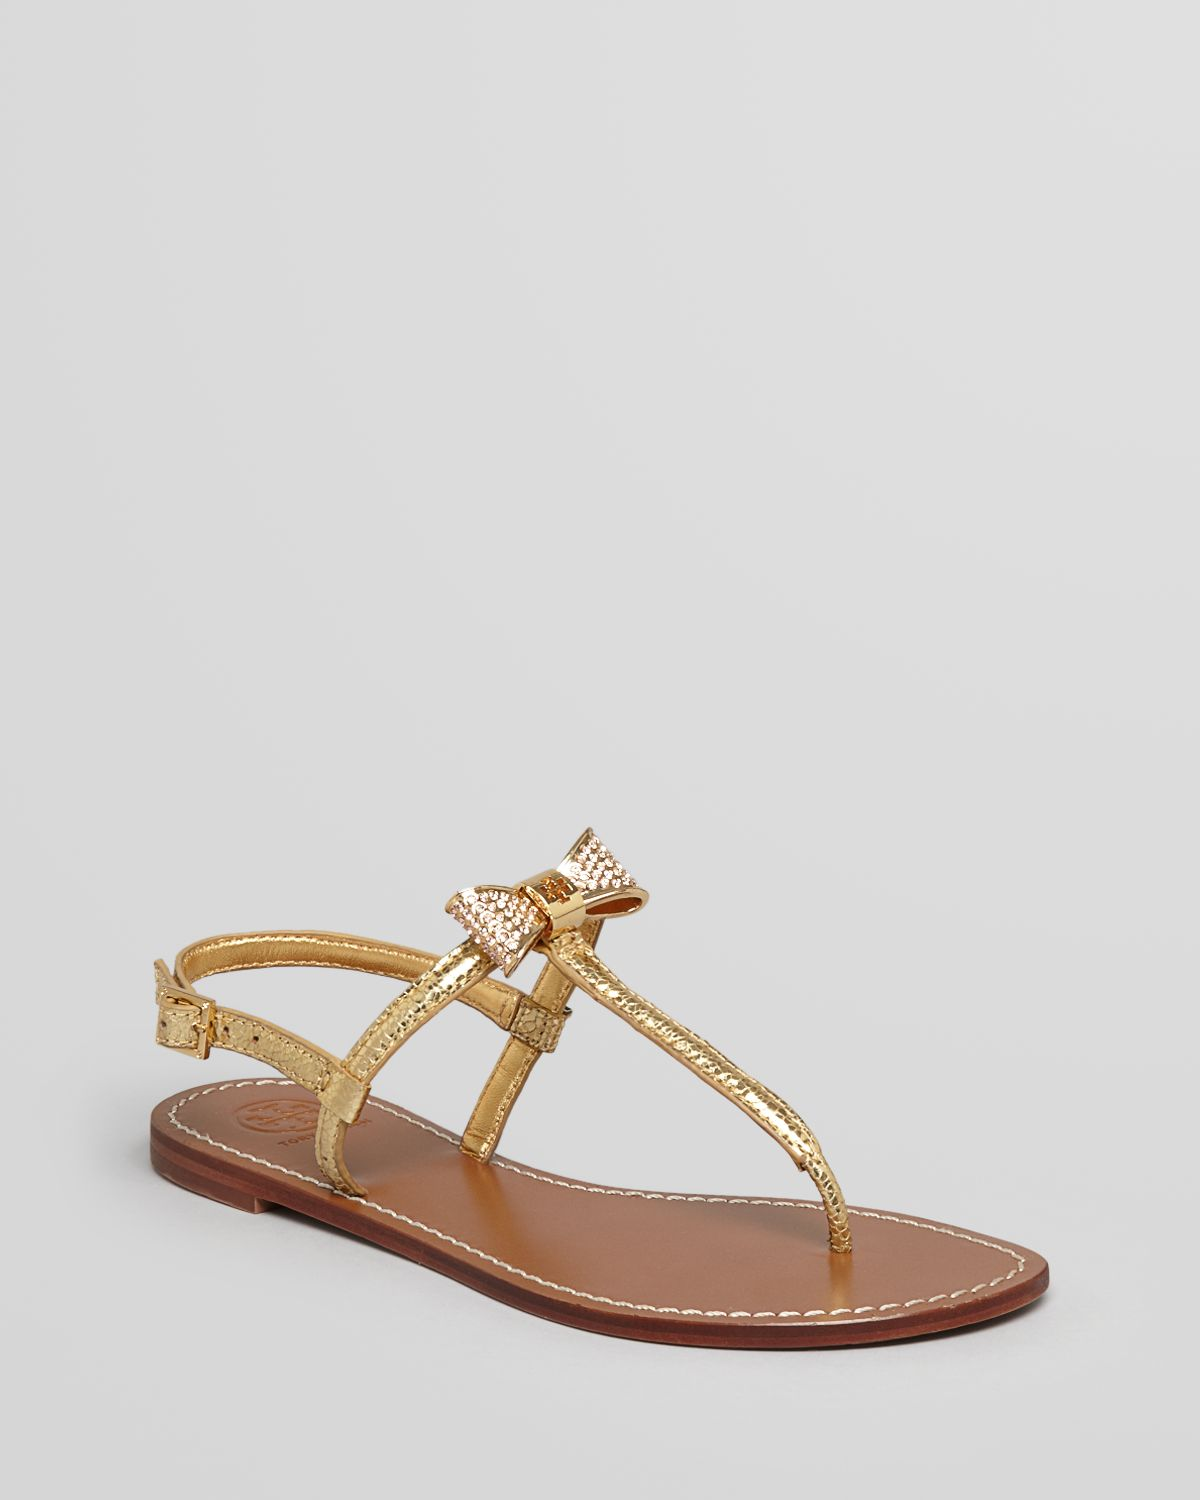 Lyst Tory Burch Thong Sandals Bryn Pave Bow Flat In Metallic